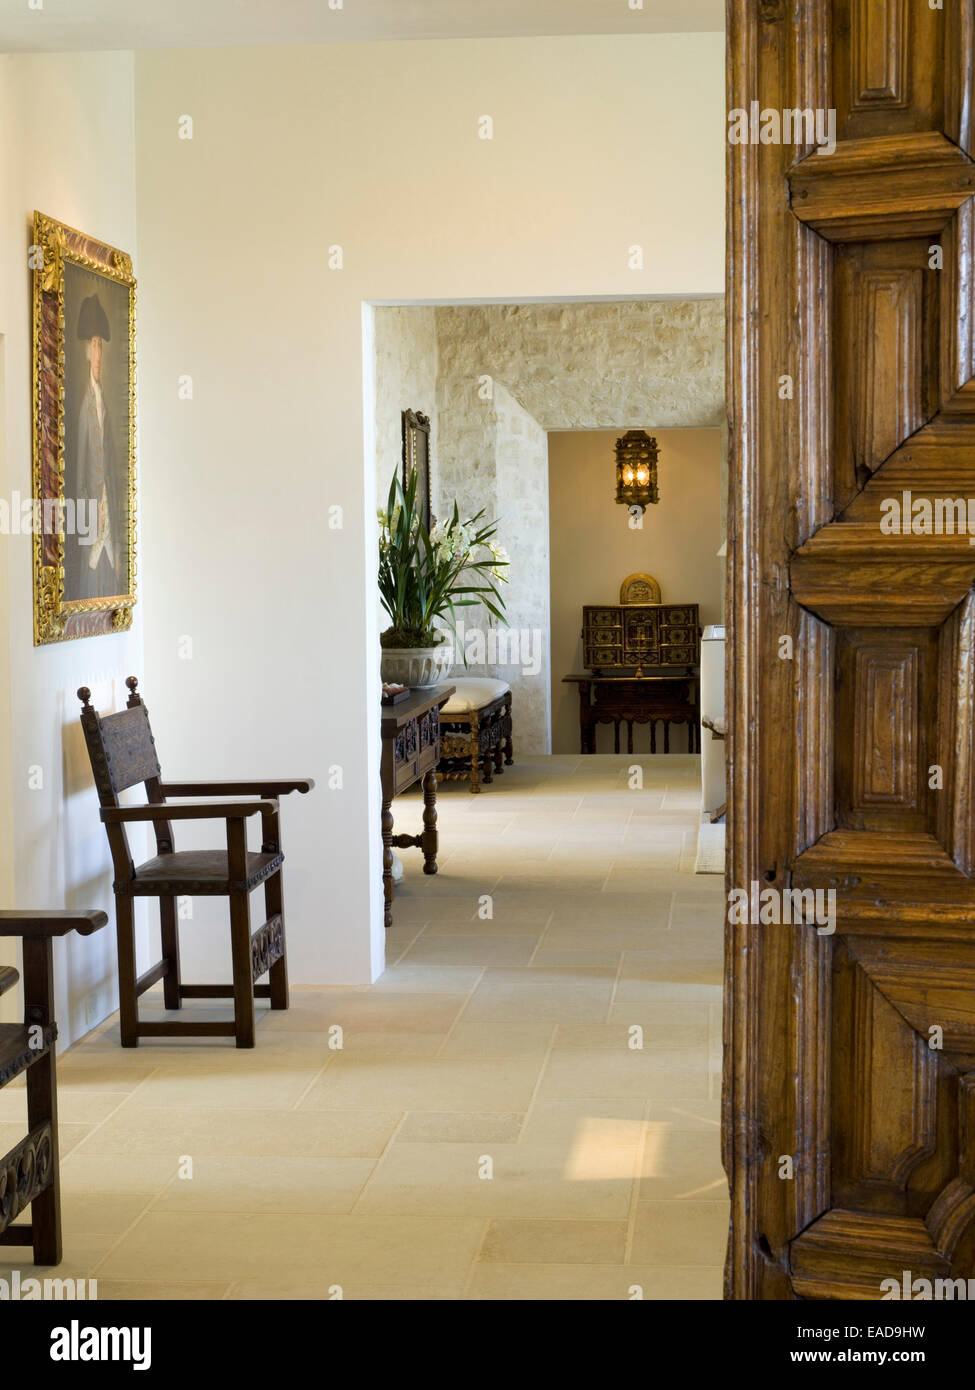 Hallway with carved wooden Door and Chairs - Stock Image